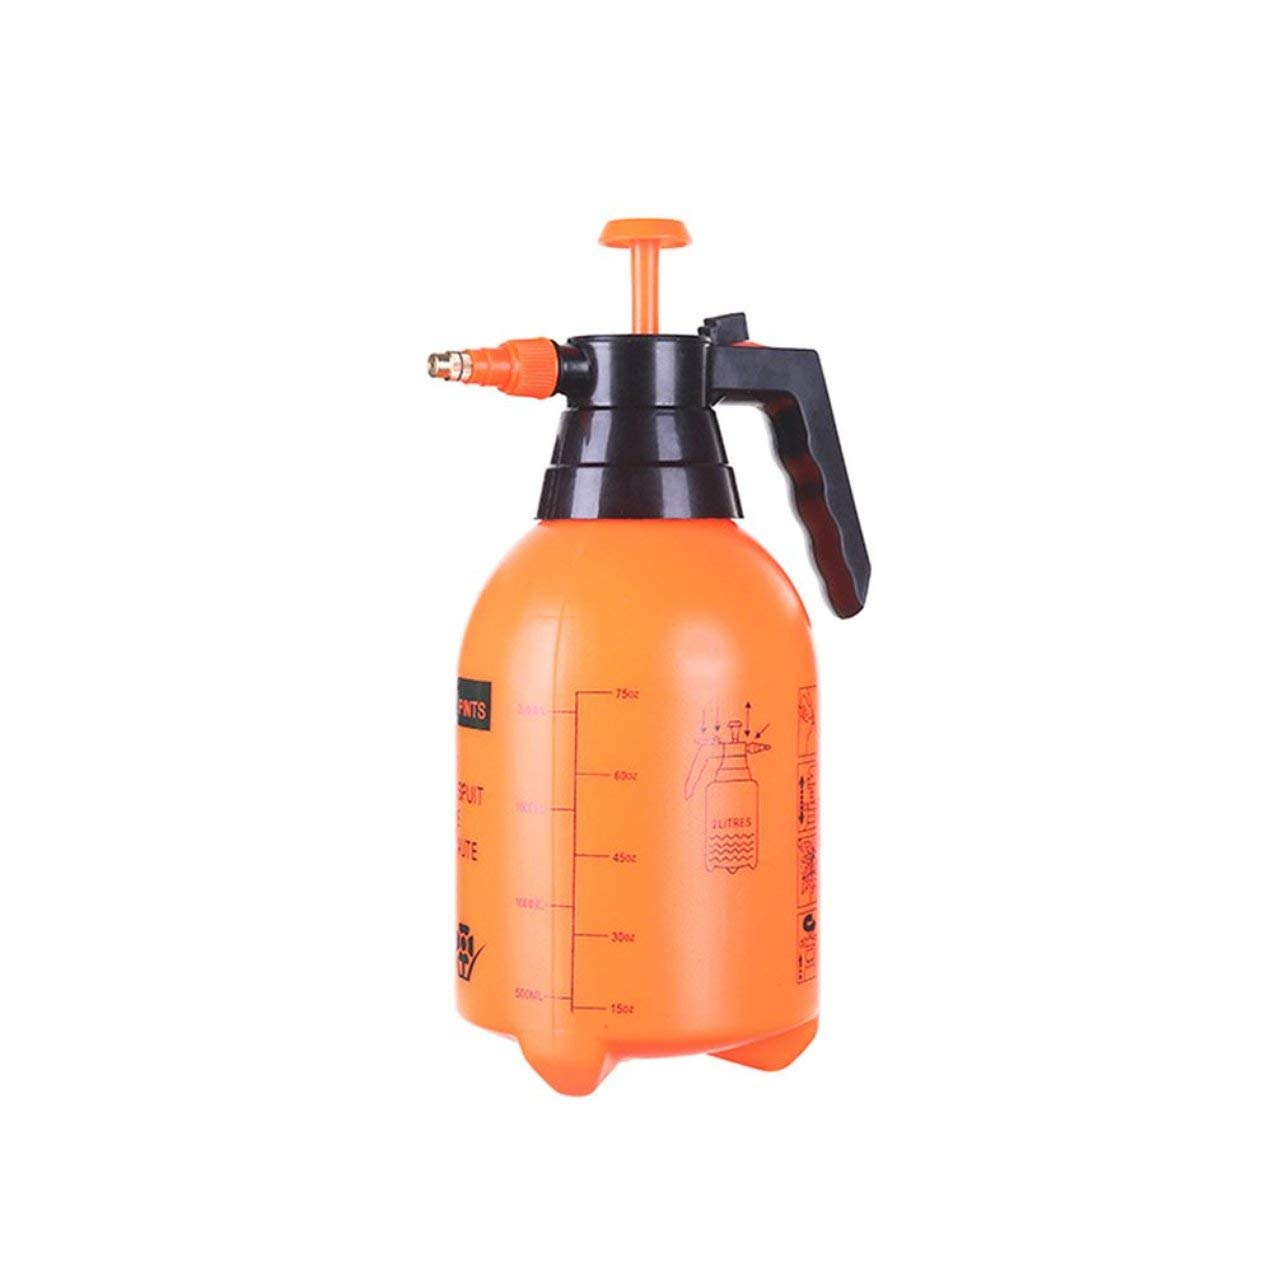 2L Watering Sprayer Bottle Gardening Atomizer Tool Big Capacity Water Cans WOSOSYEYO